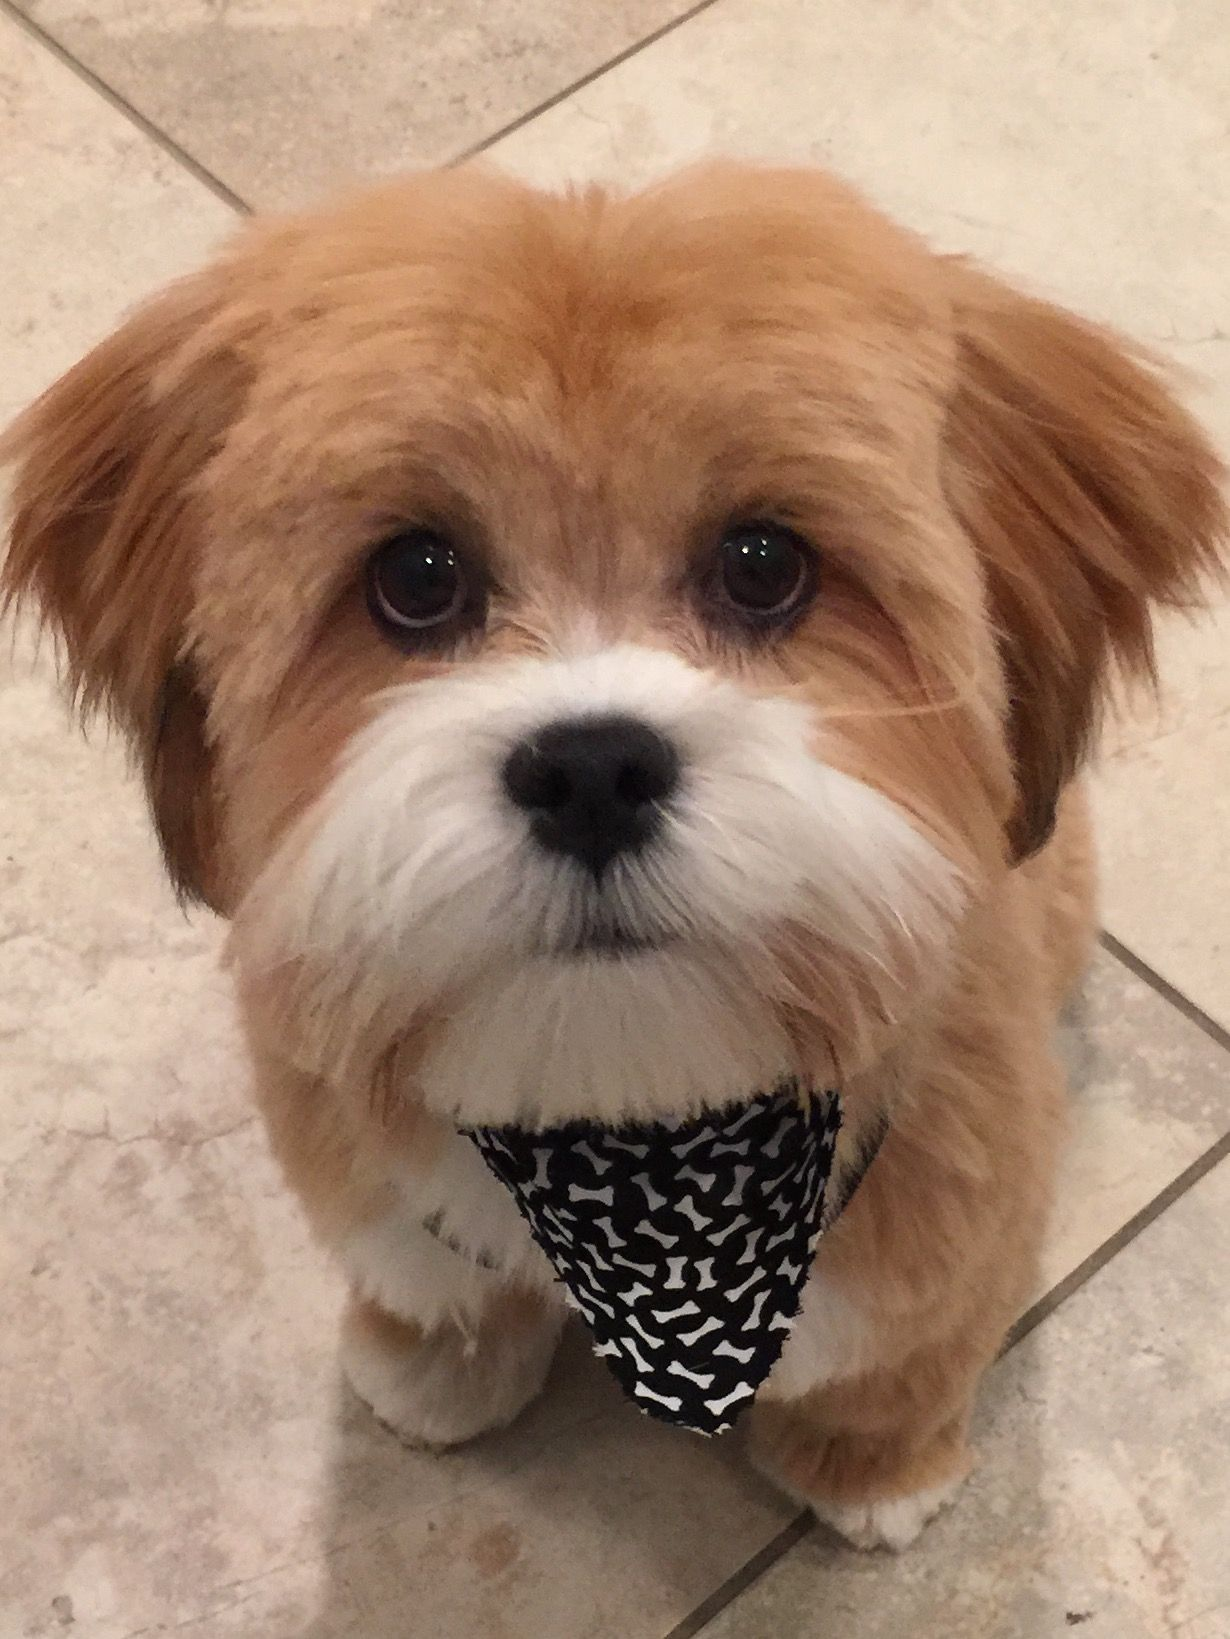 Just groomed!